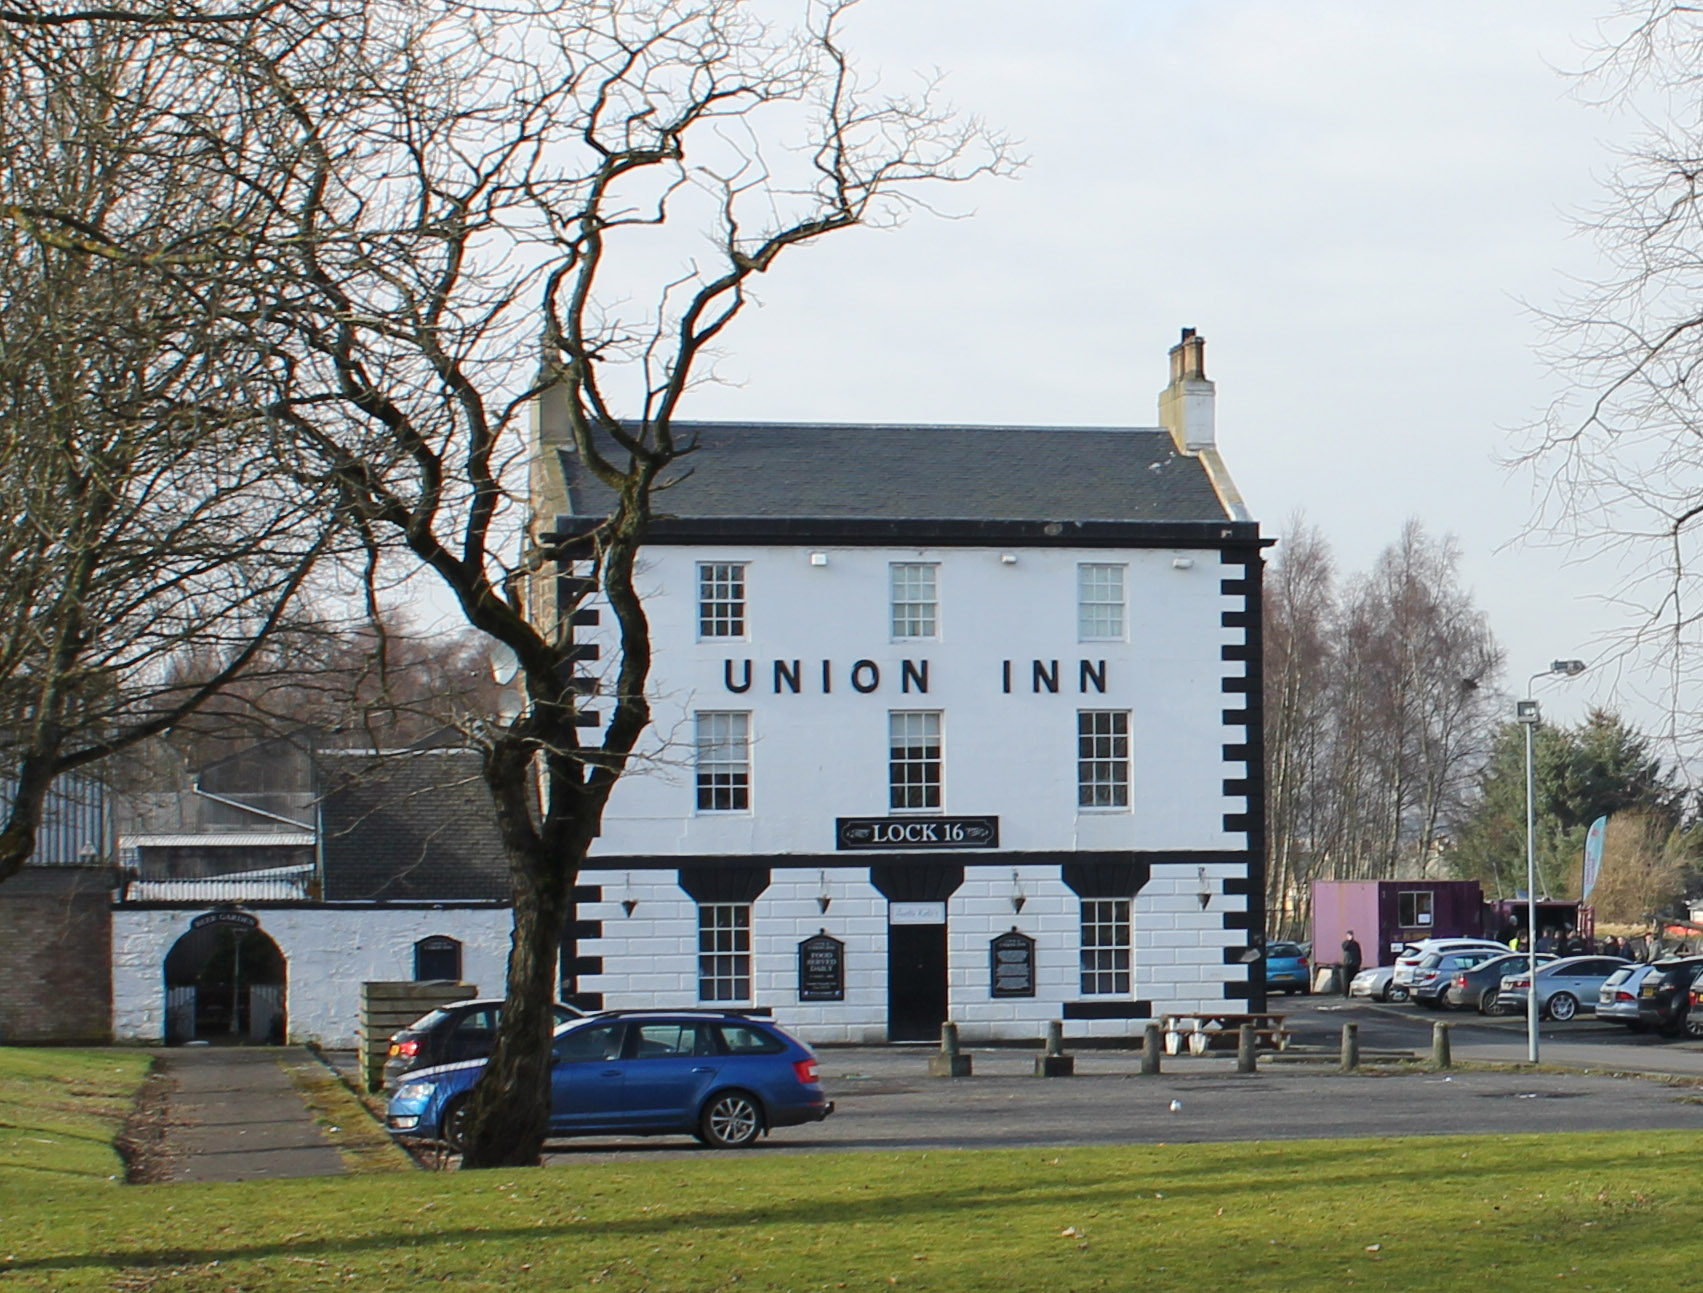 The Union Inn, as is